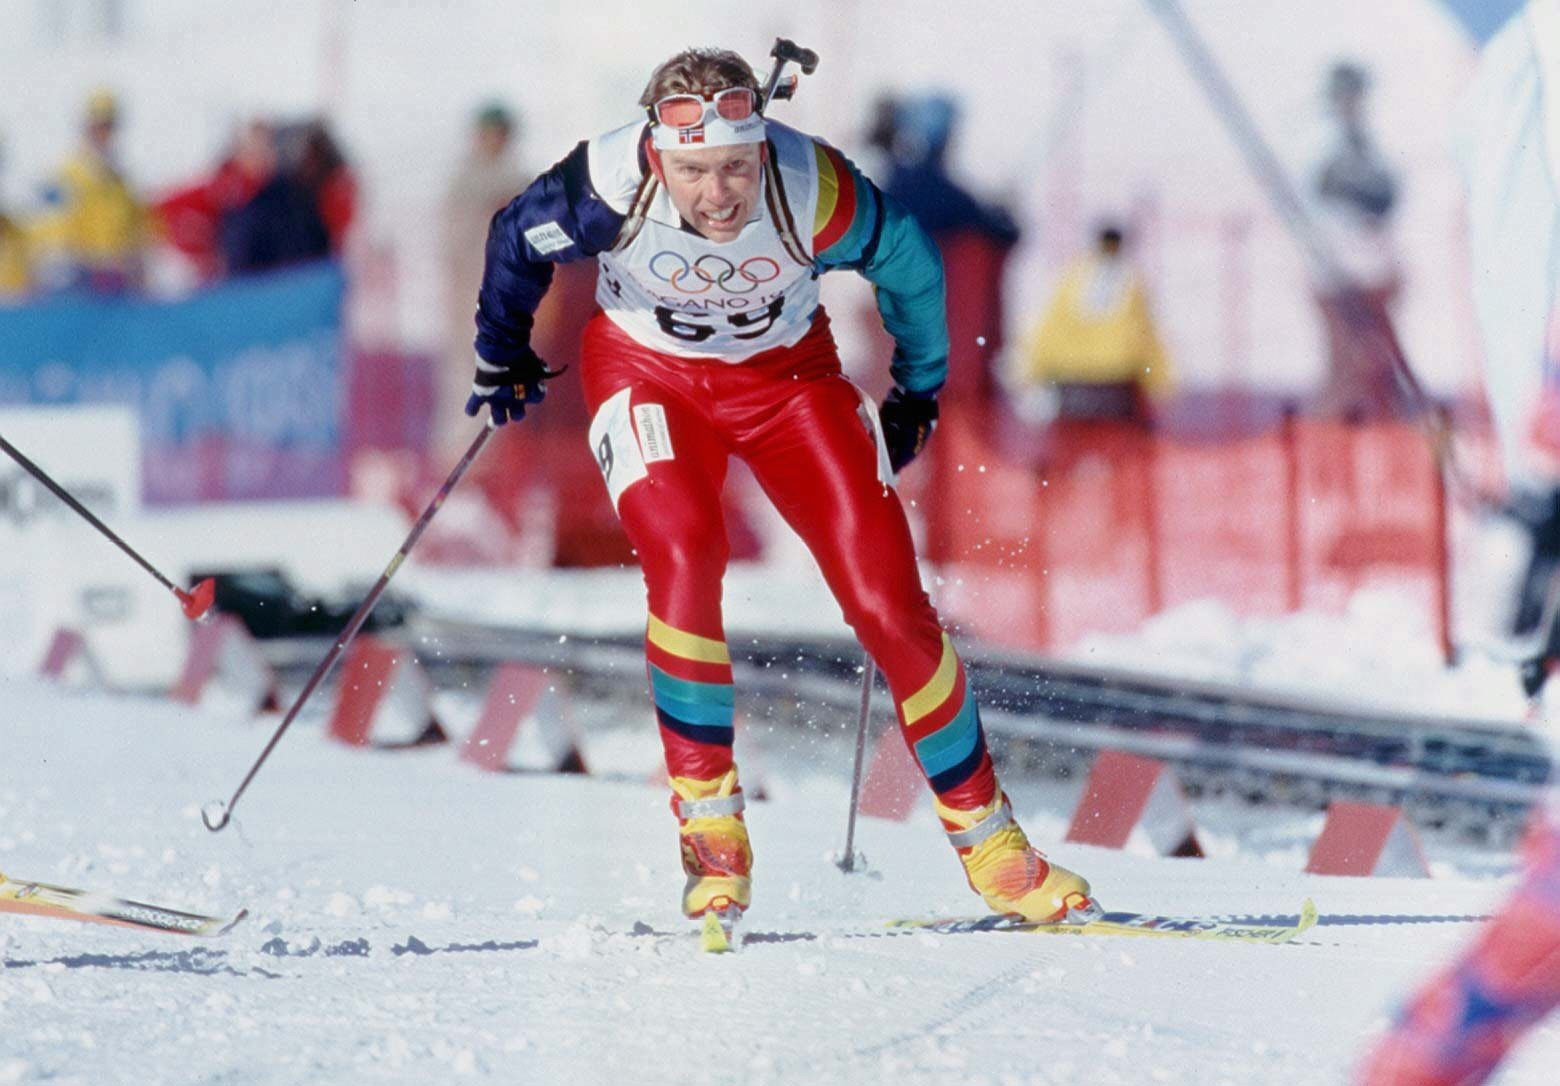 Tributes paid after triple Olympic biathlon champion Hanevold dies aged 49